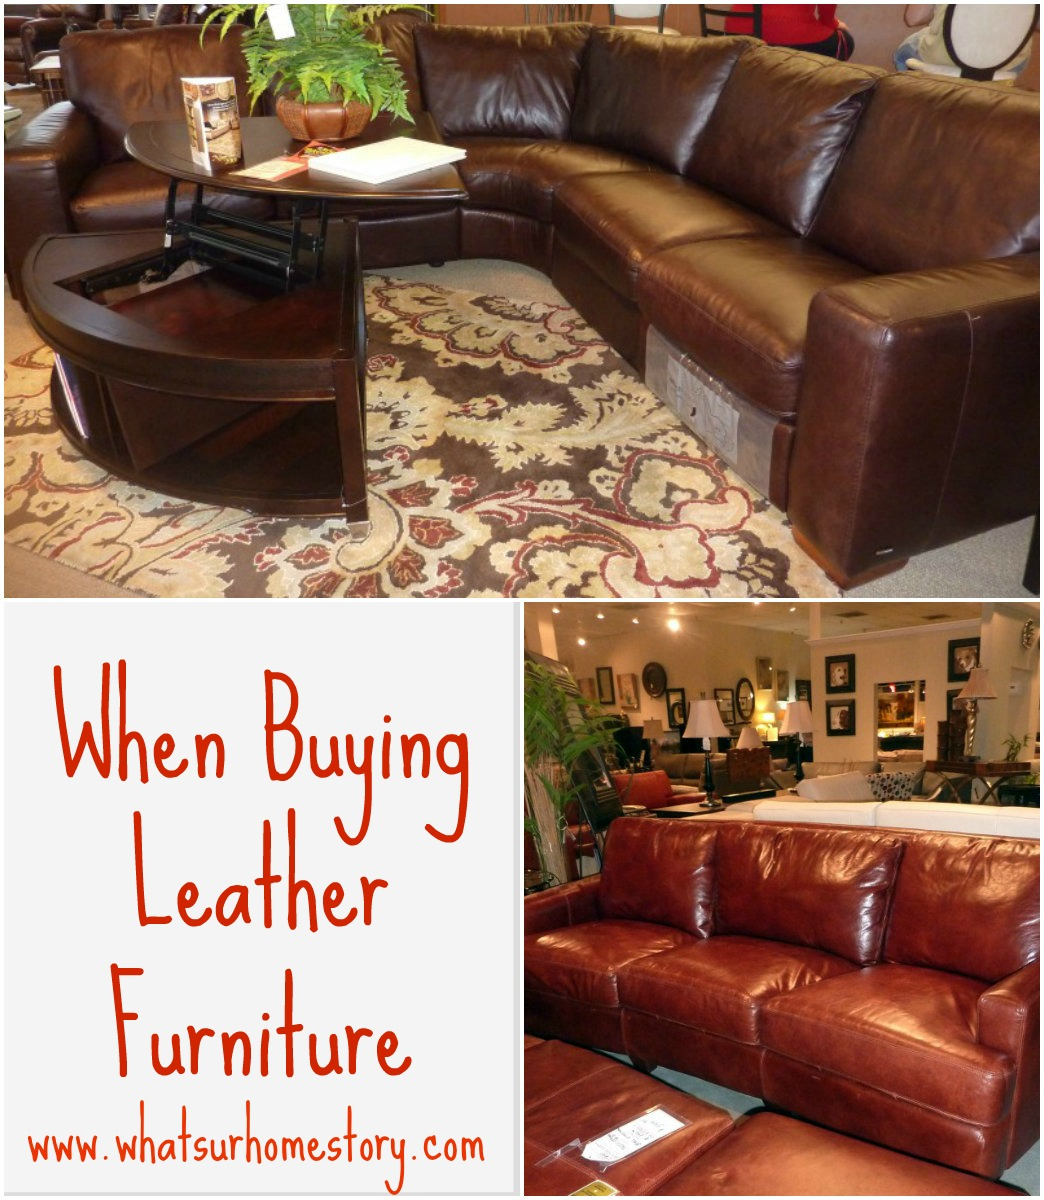 3 quick tips about buying leather furniture